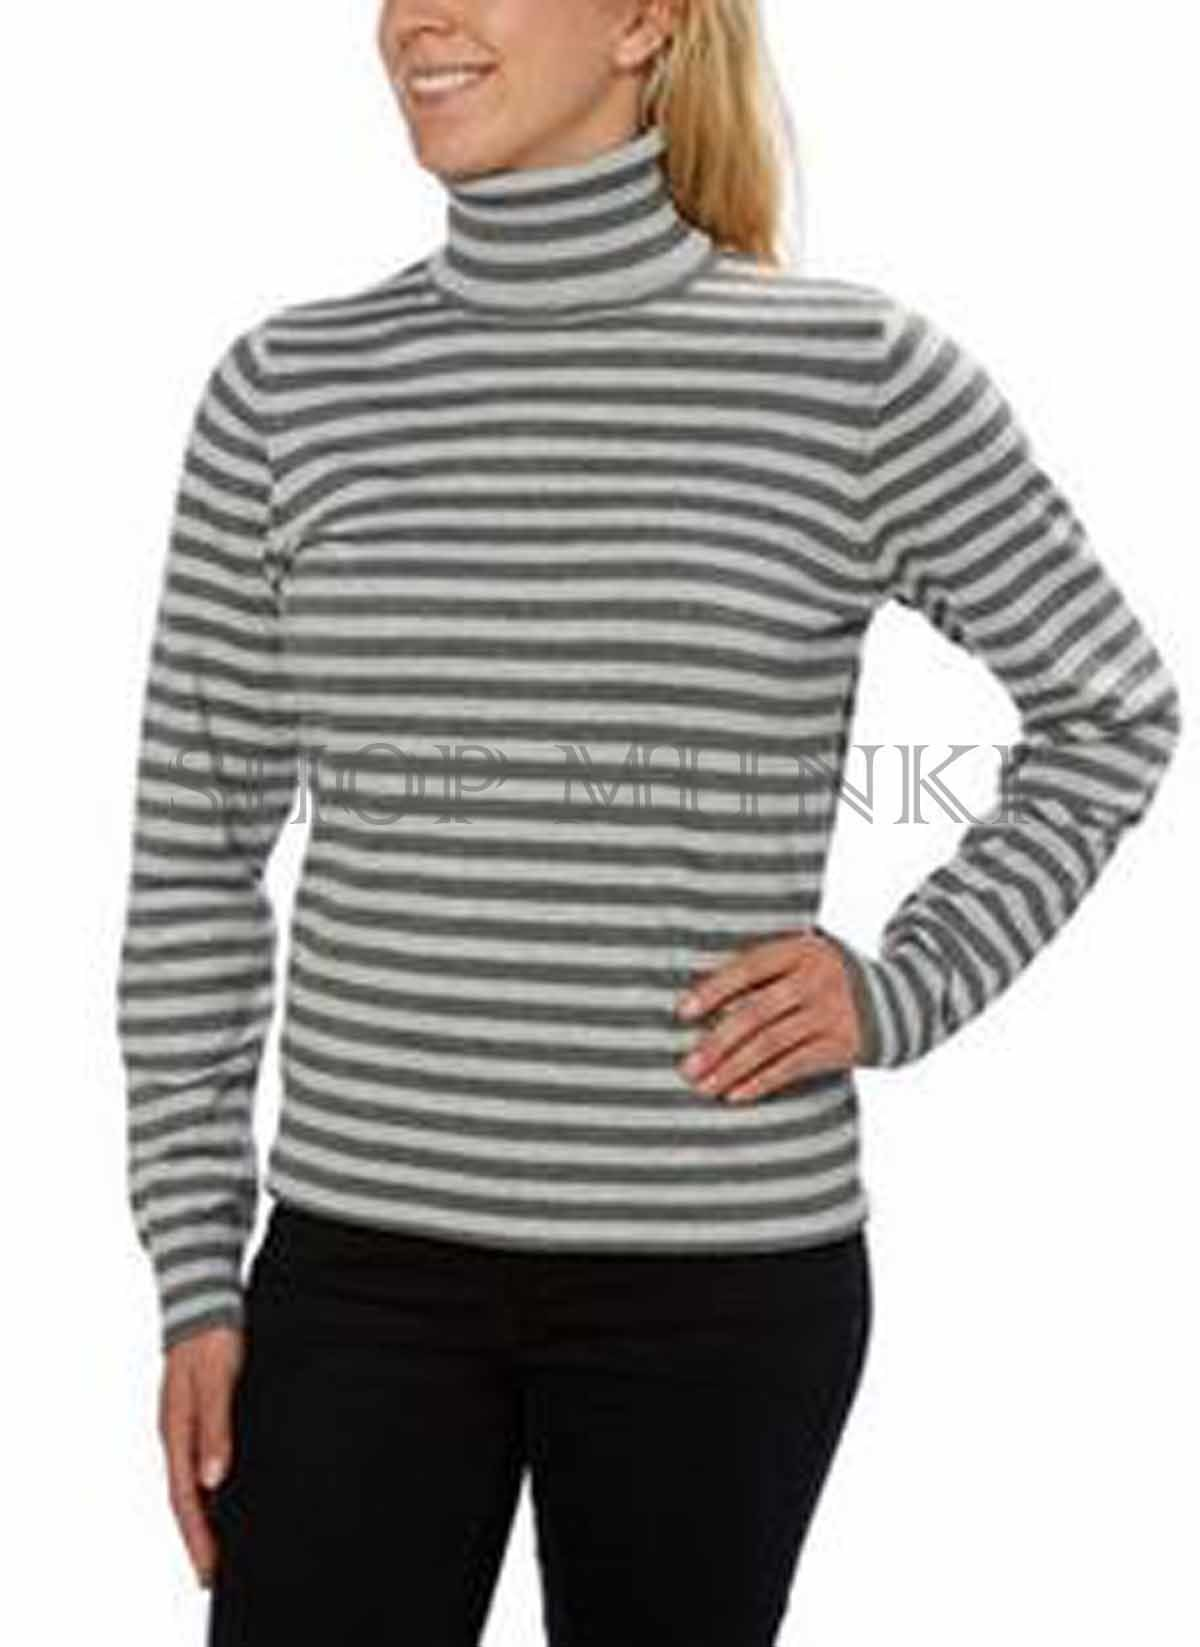 Sweater Over Collared Shirt Womens Summer Cook